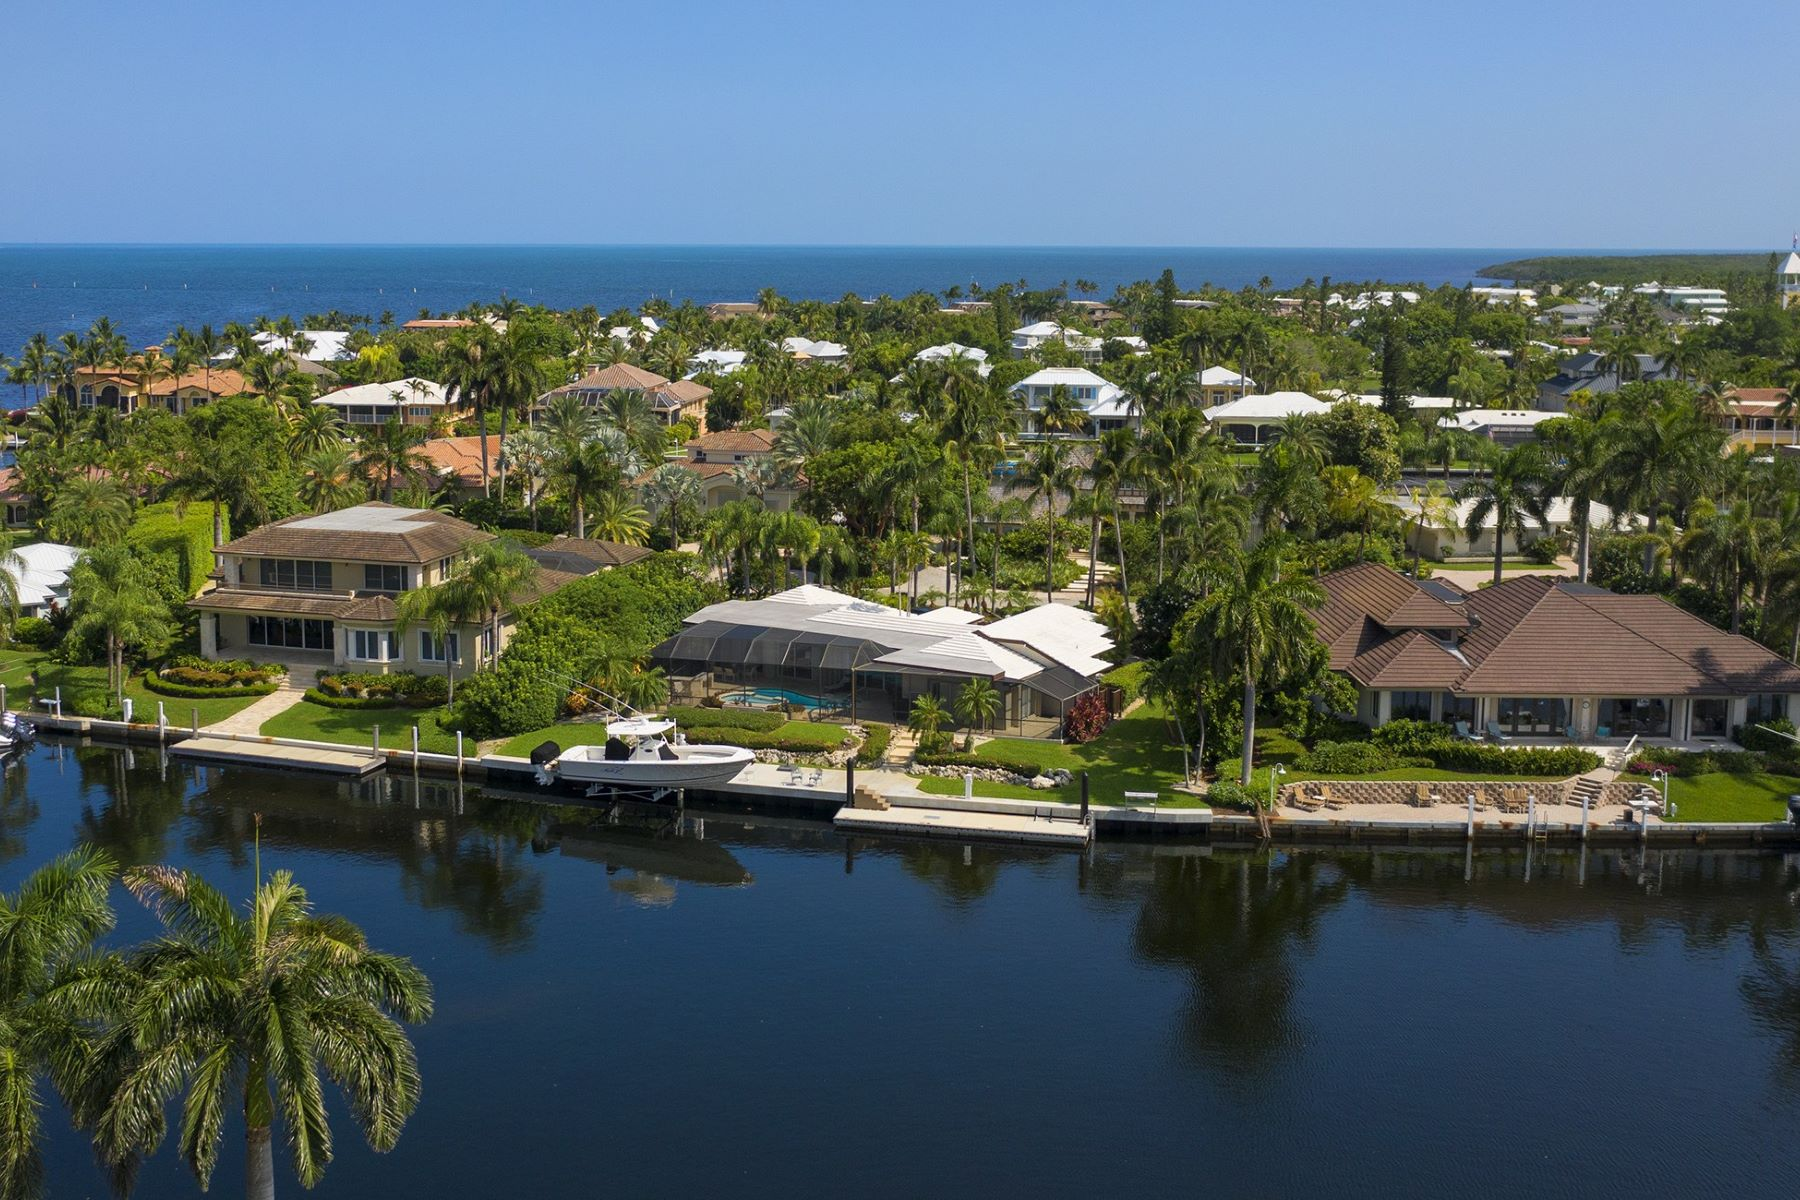 Single Family Homes のために 売買 アット 26 Channel Cay Road, Key Largo, FL Key Largo, フロリダ 33037 アメリカ